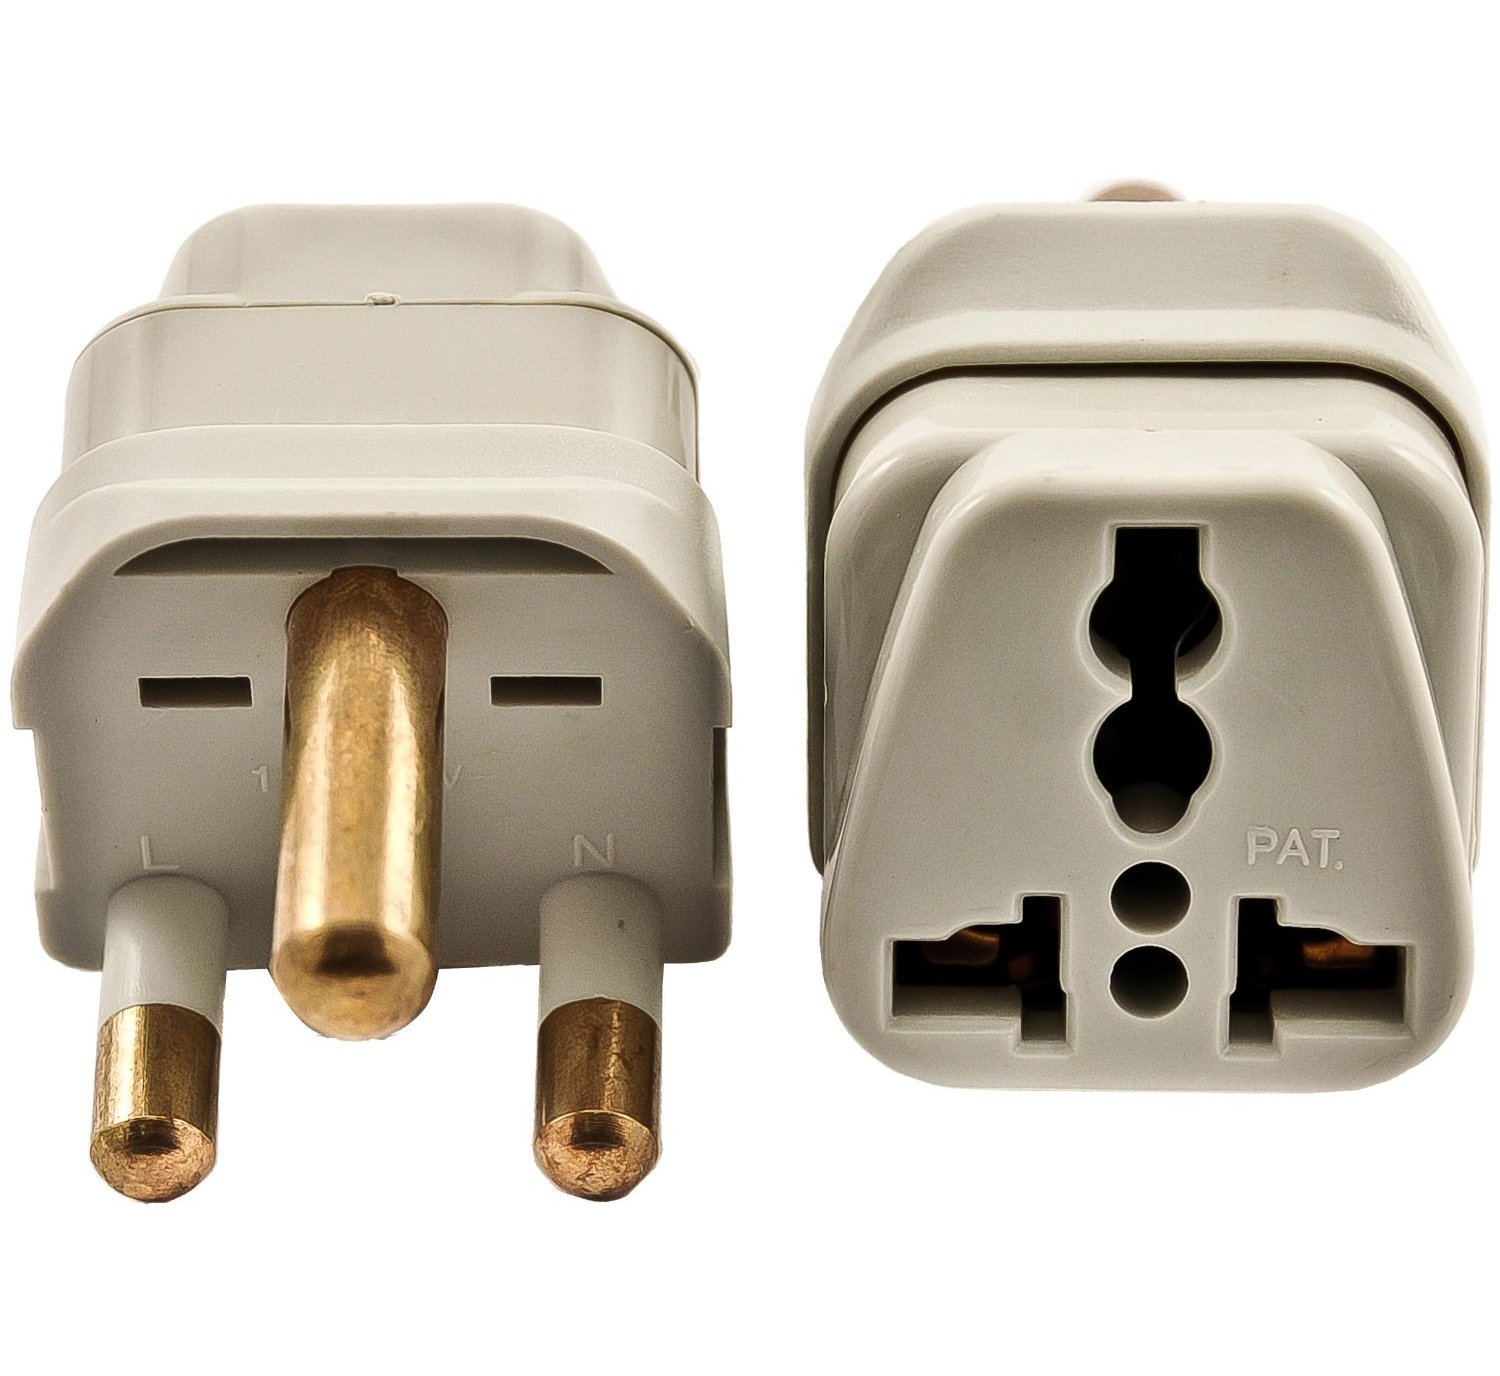 Vct Vp110 Universal Travel Outlet Plug Adapter For South Africa Be Sure To Use The Properly Rated Electrical Box Designed Used Electric Plugs